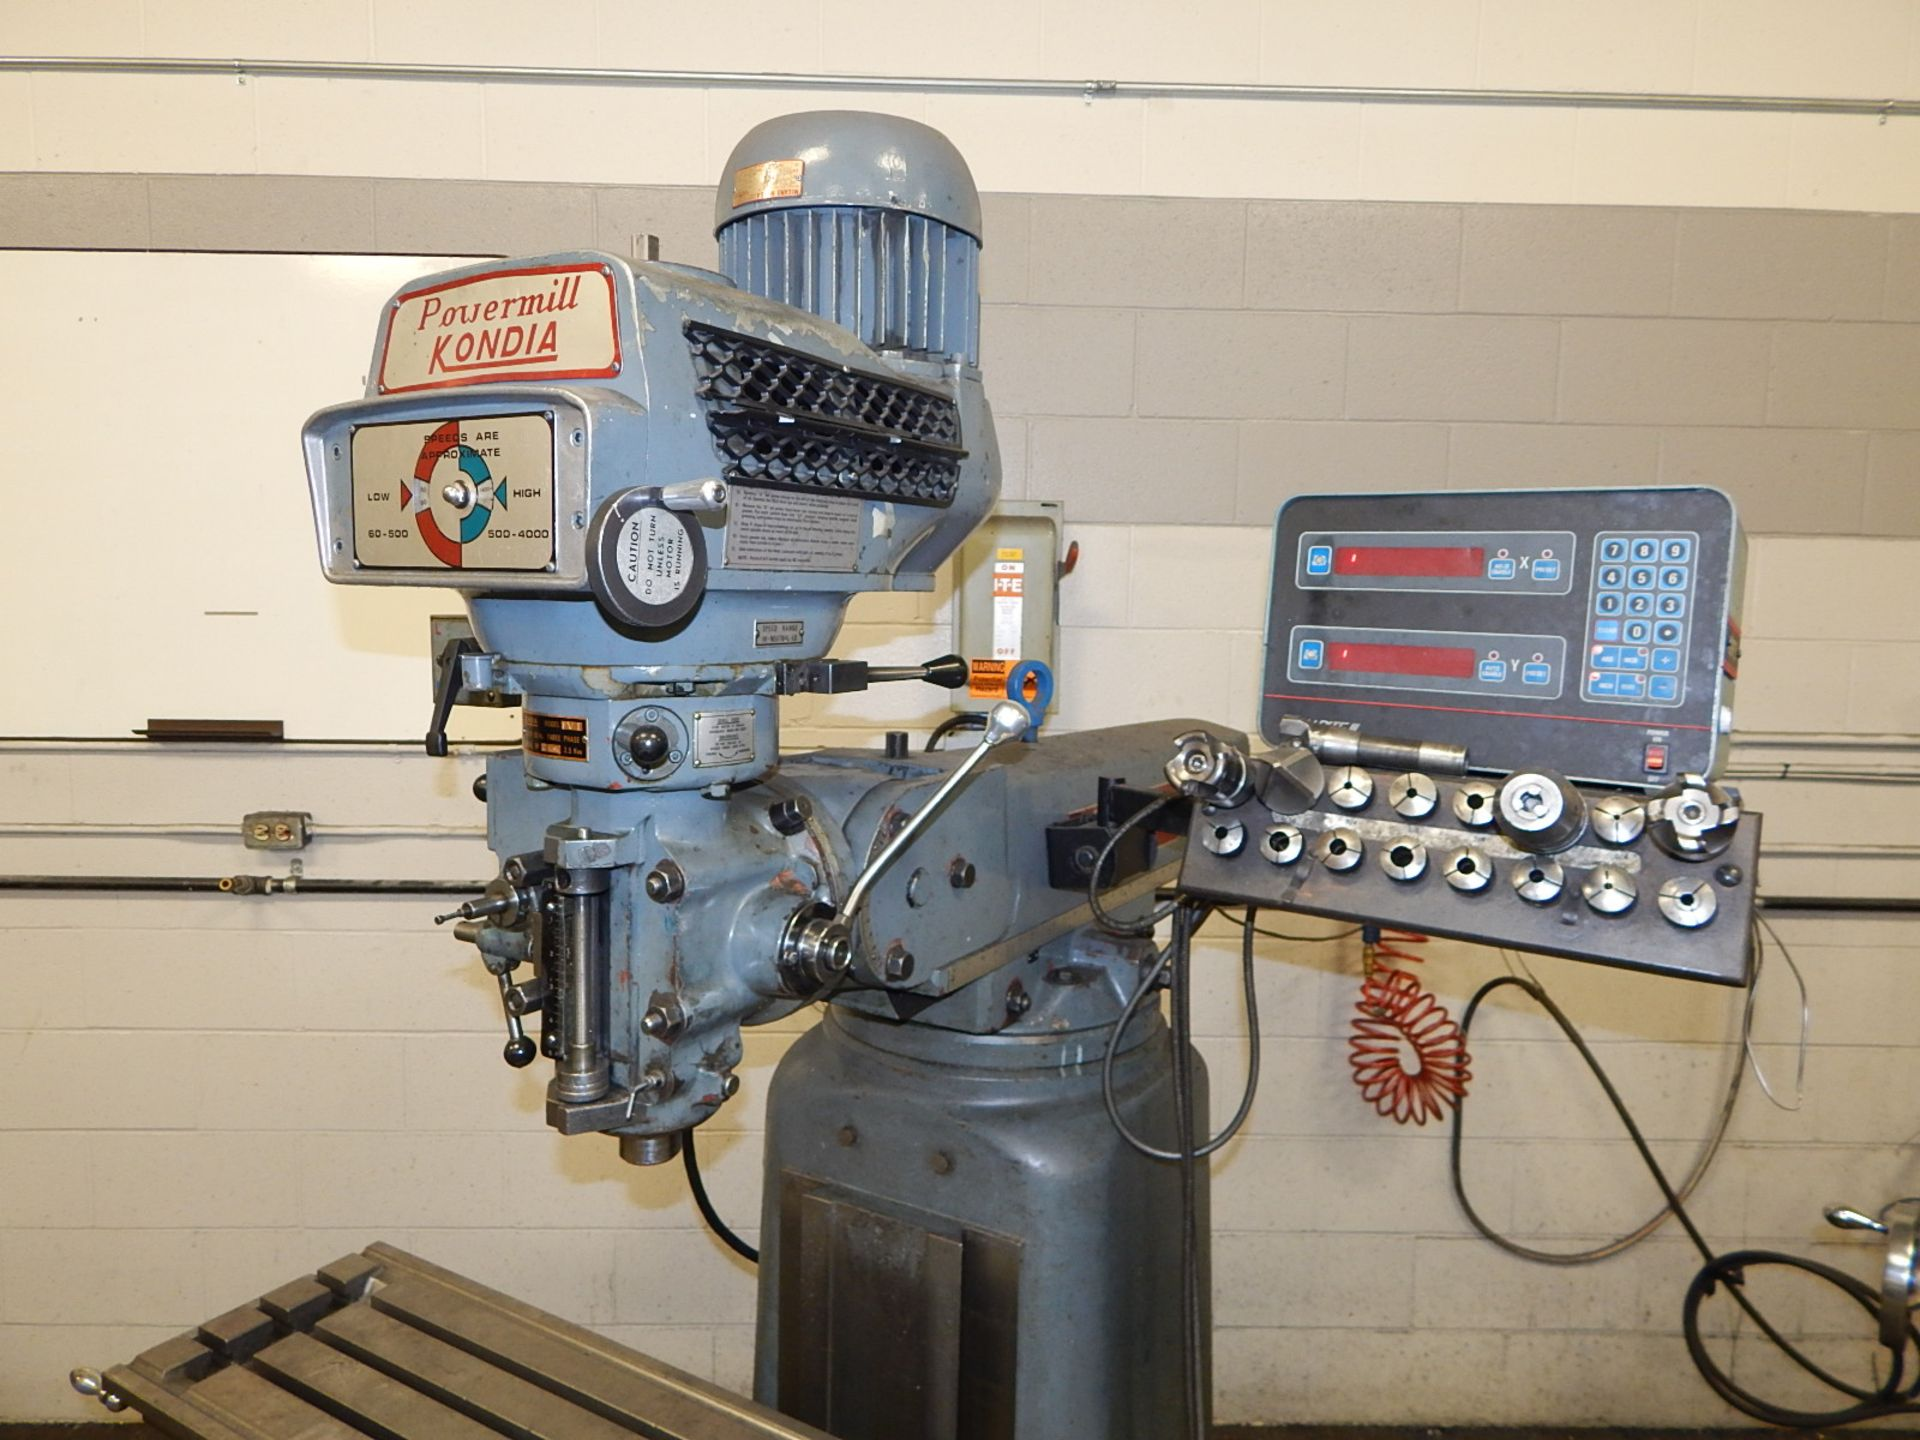 """Lot 37 - KONDIA FV-1 VERTICAL TURRET MILL WITH 48""""X12"""" TABLE, SPEEDS TO 4000 RPM, ACCURITE III 2 AXIS DRO,"""